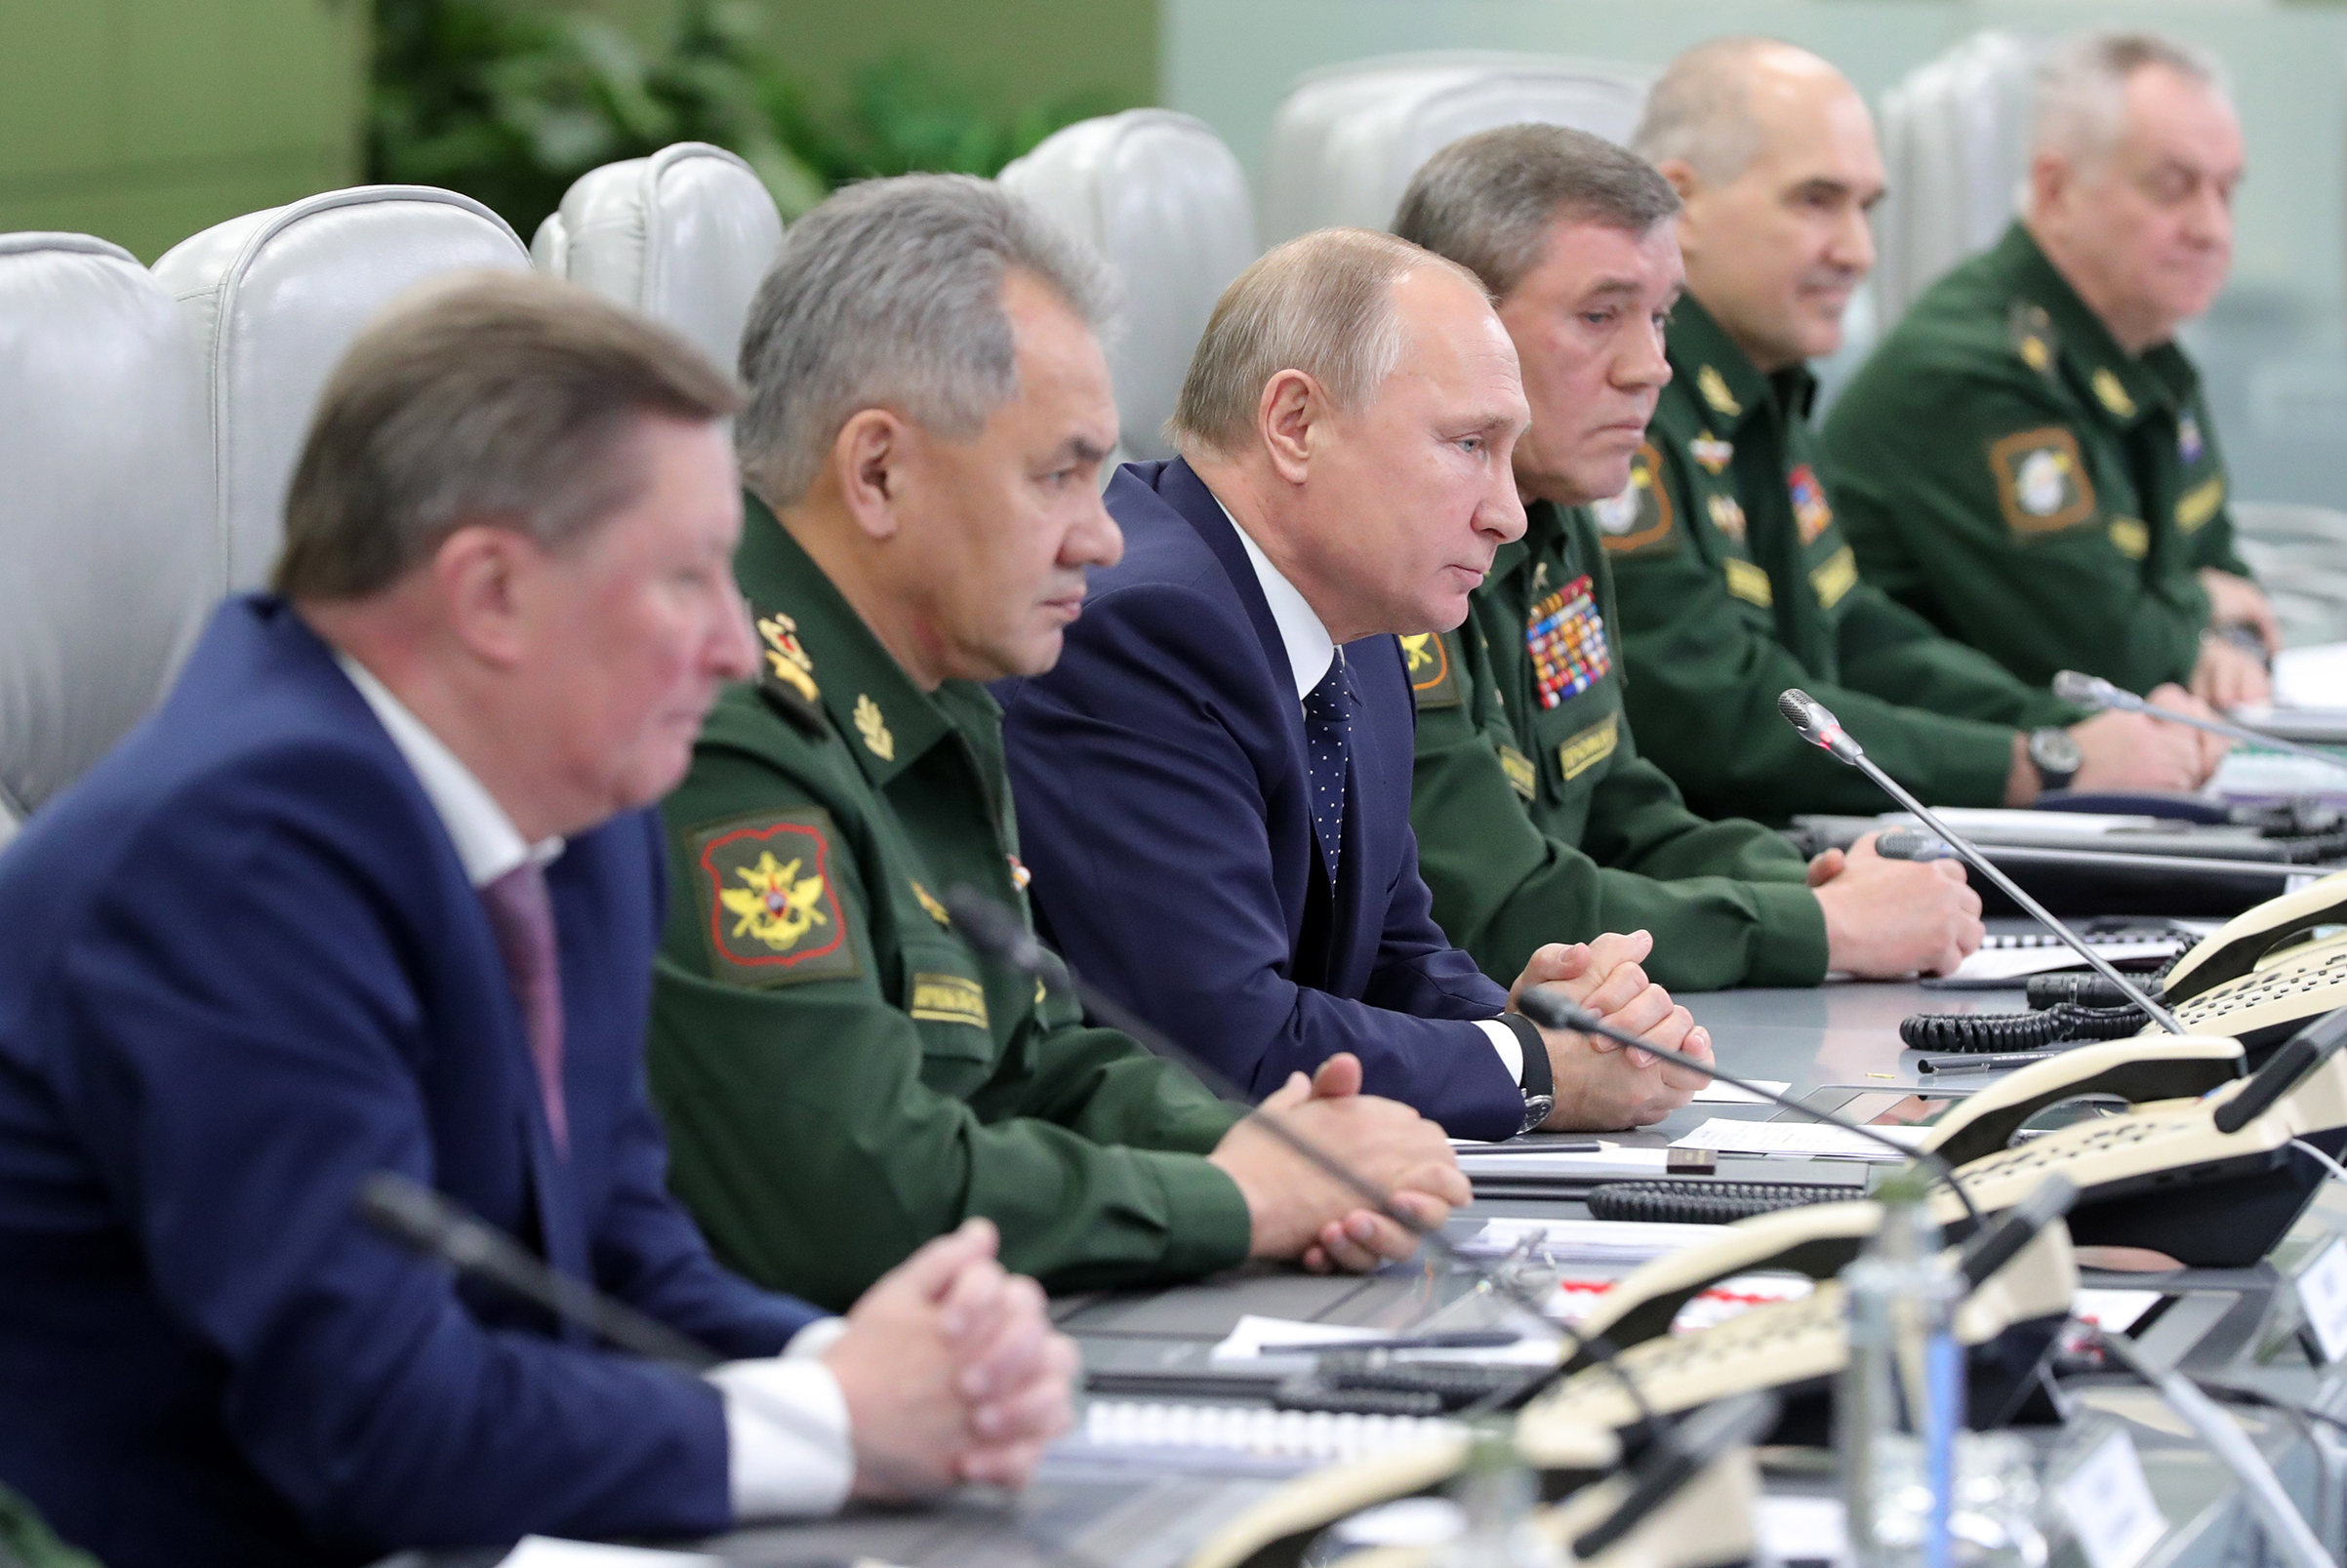 Vladimir Putin, center, watches the launch of a new Russian hypersonic missile system on Dec. 26